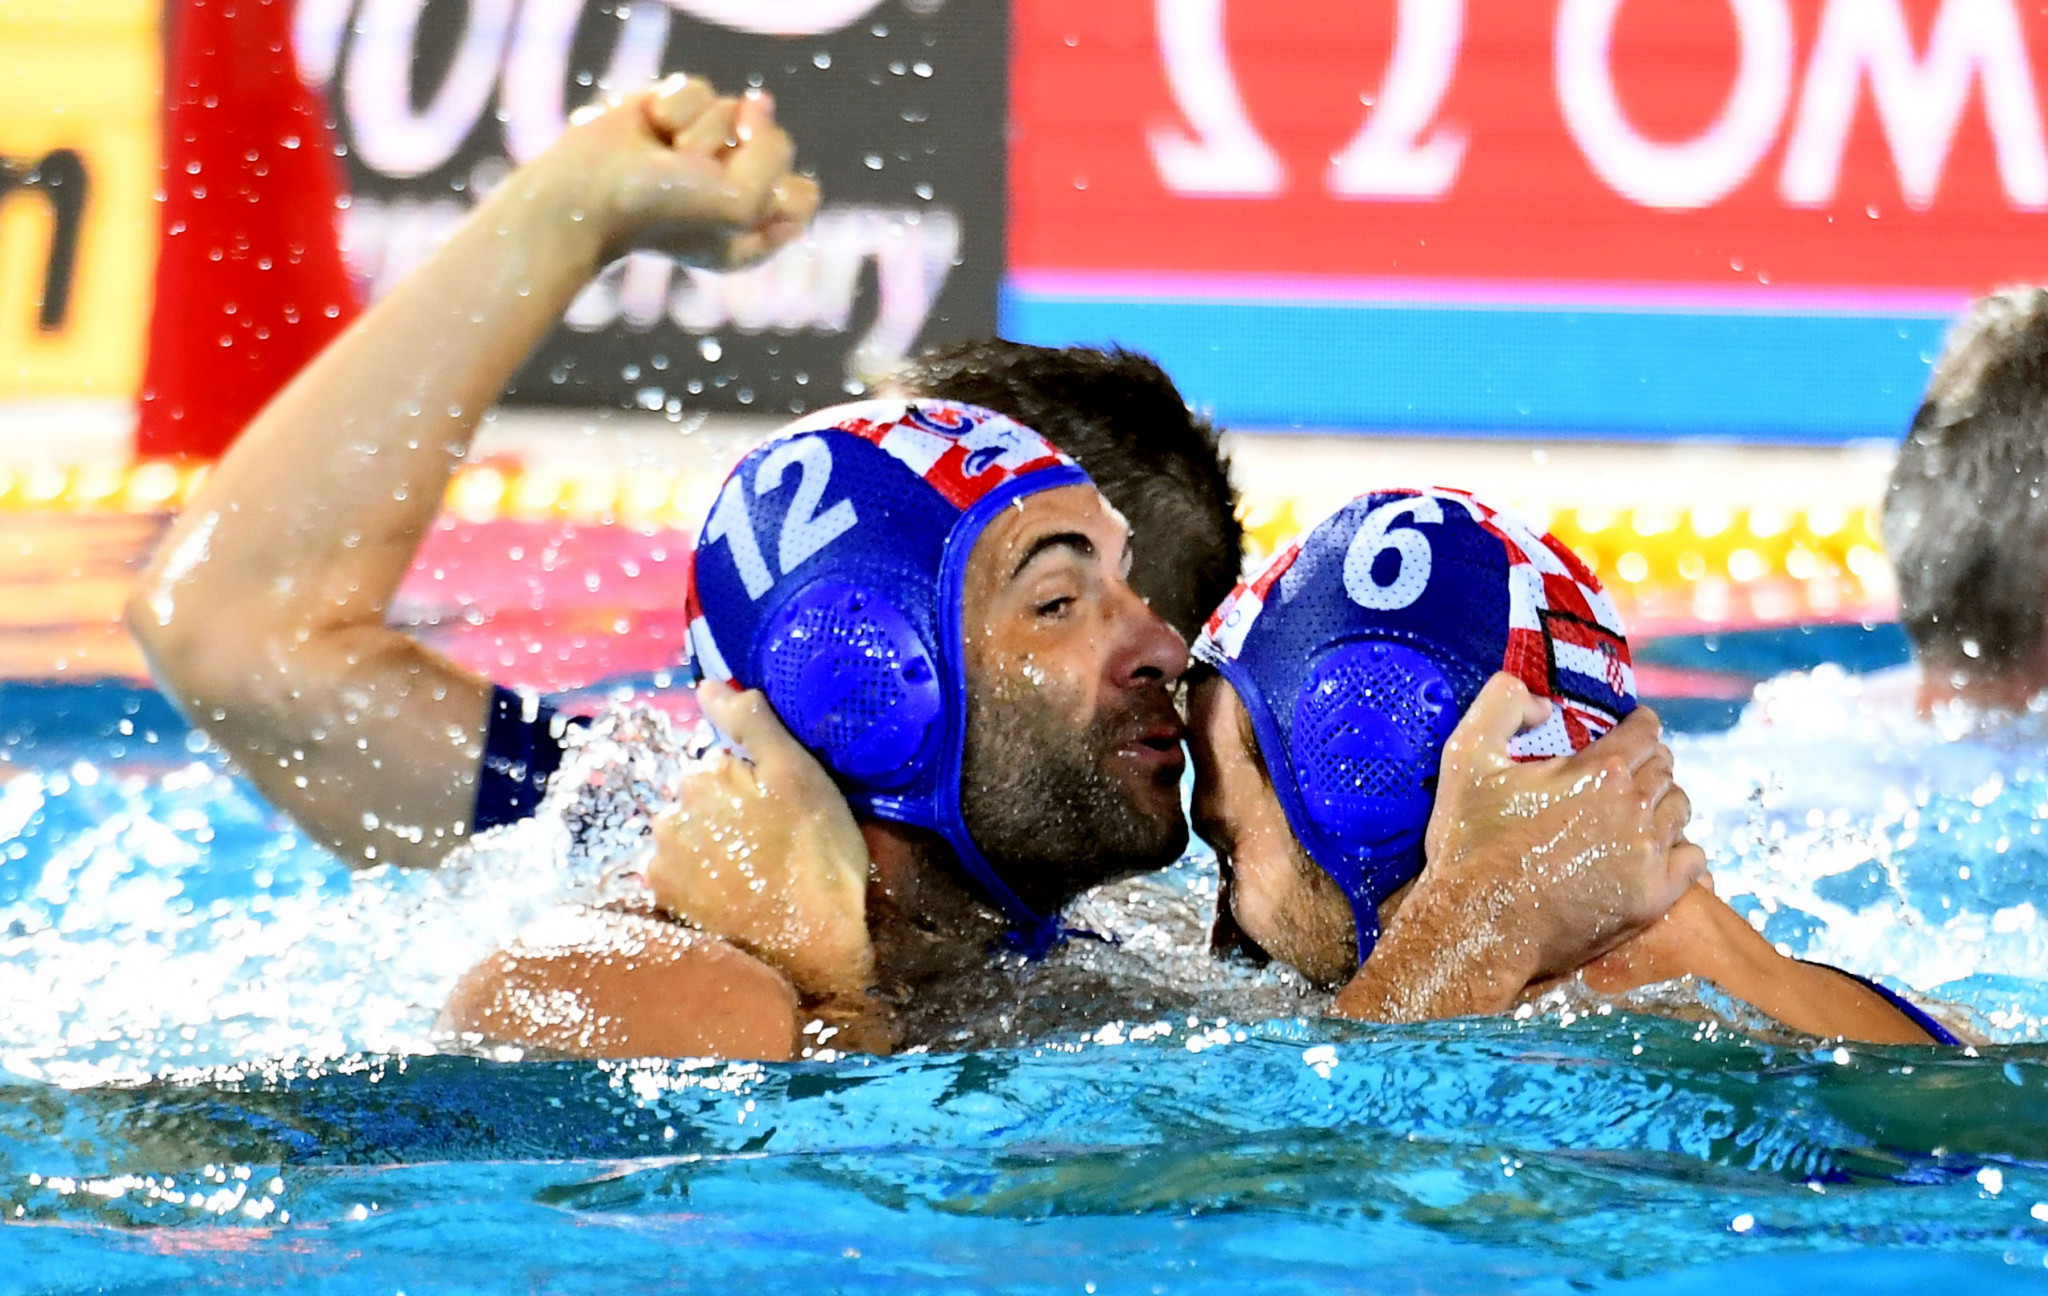 Croatia qualify for men's Water Polo World League Super Final